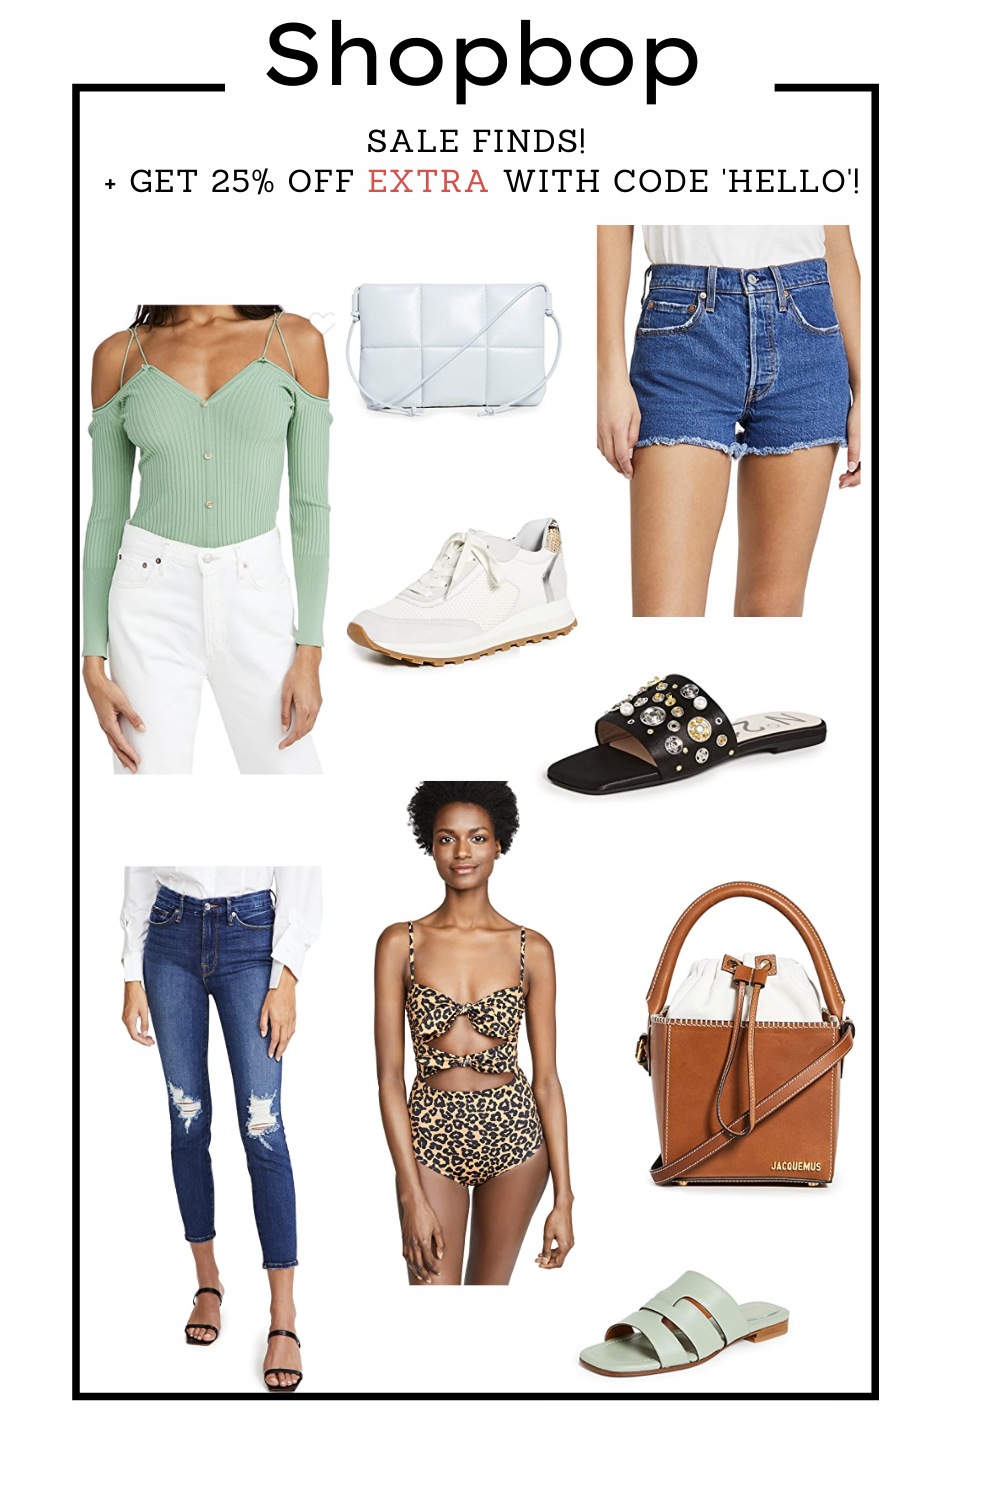 Favorite Picks of the Shopbop sale section plus an additional 25% off!